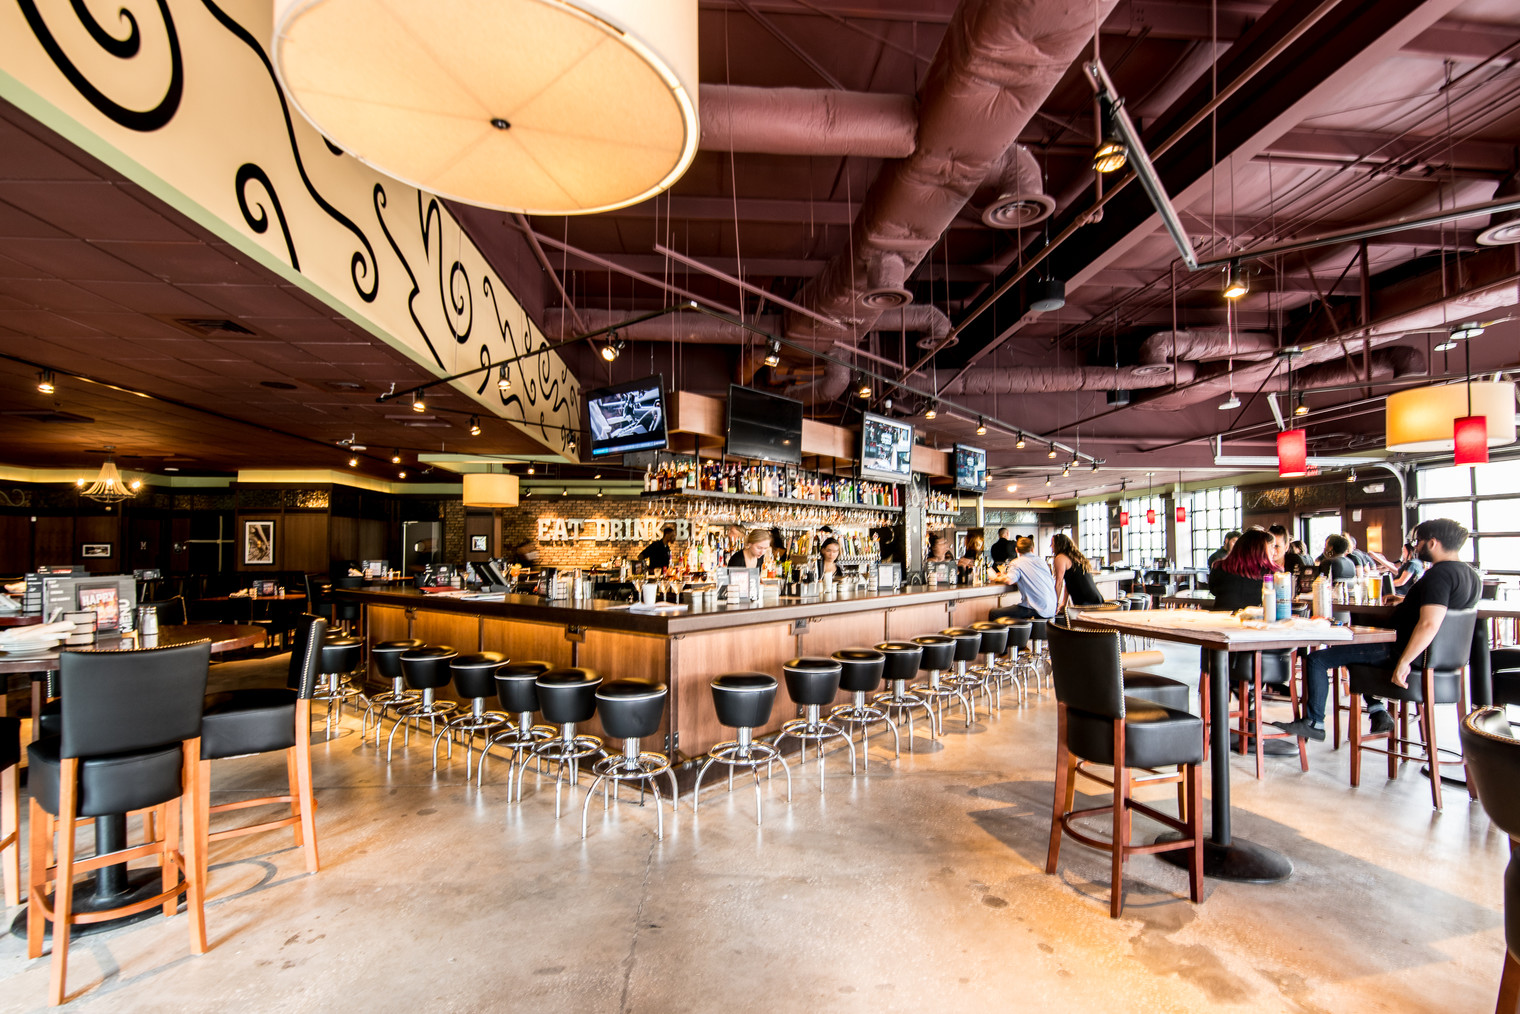 Bar Louie Awarded the Pride of Sioux City: Business Beautification Award / Spanish & English Version